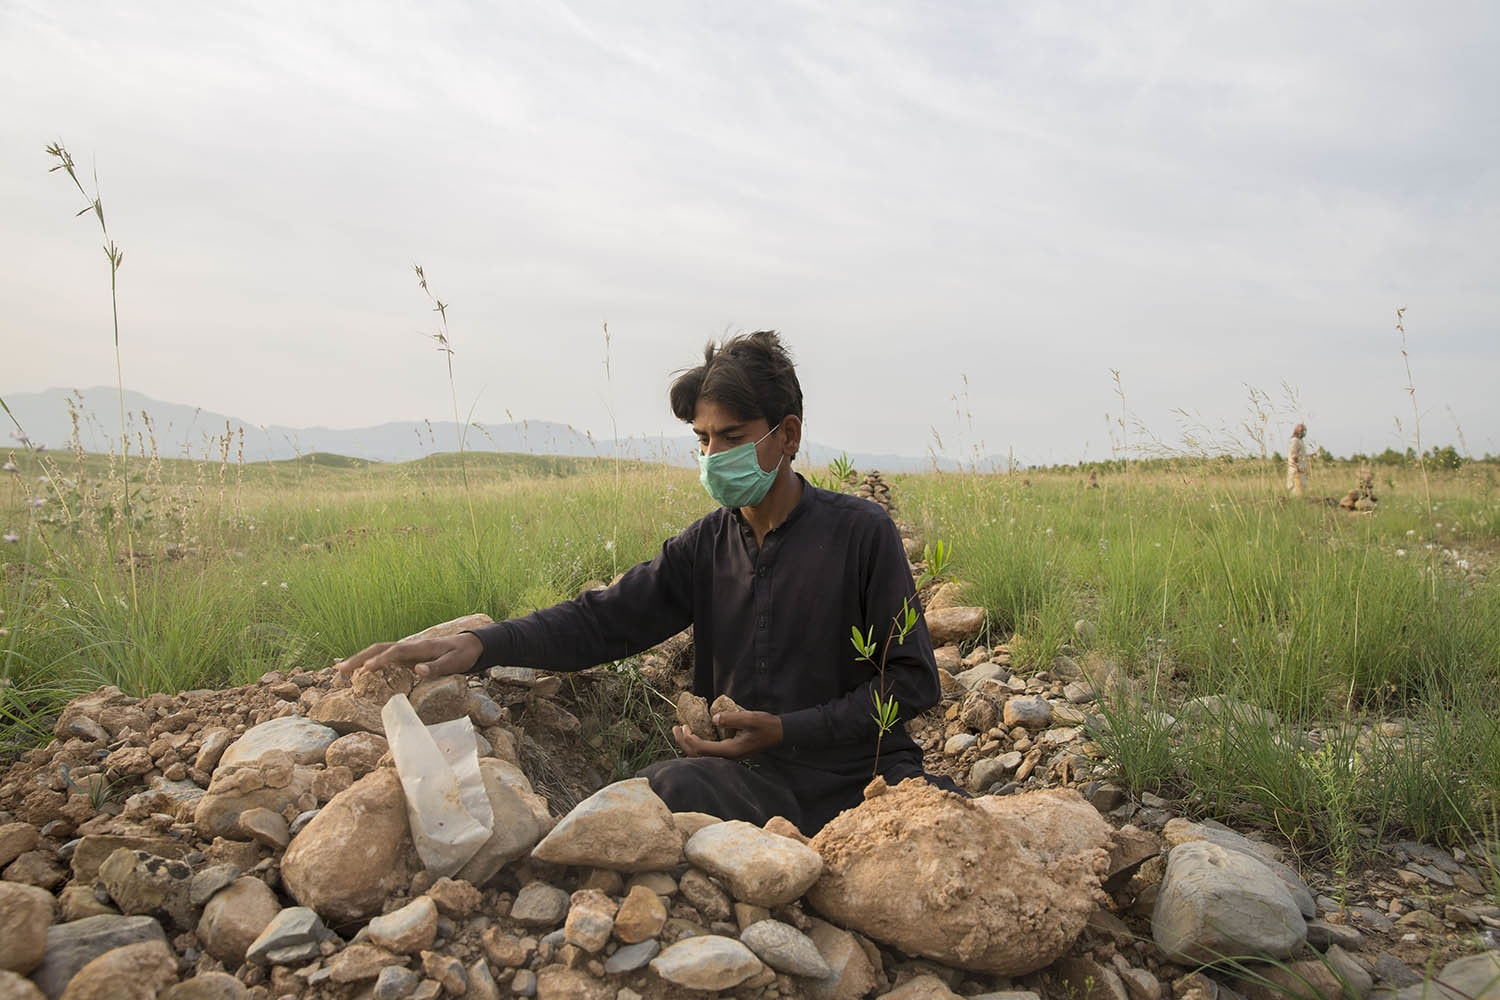 Abu Hurera, who is currently out of school because of Covid-19, tends to plants while working for the government's initiative to plant 10 billion trees, May 11, 2020, in Azakhel Mattani.